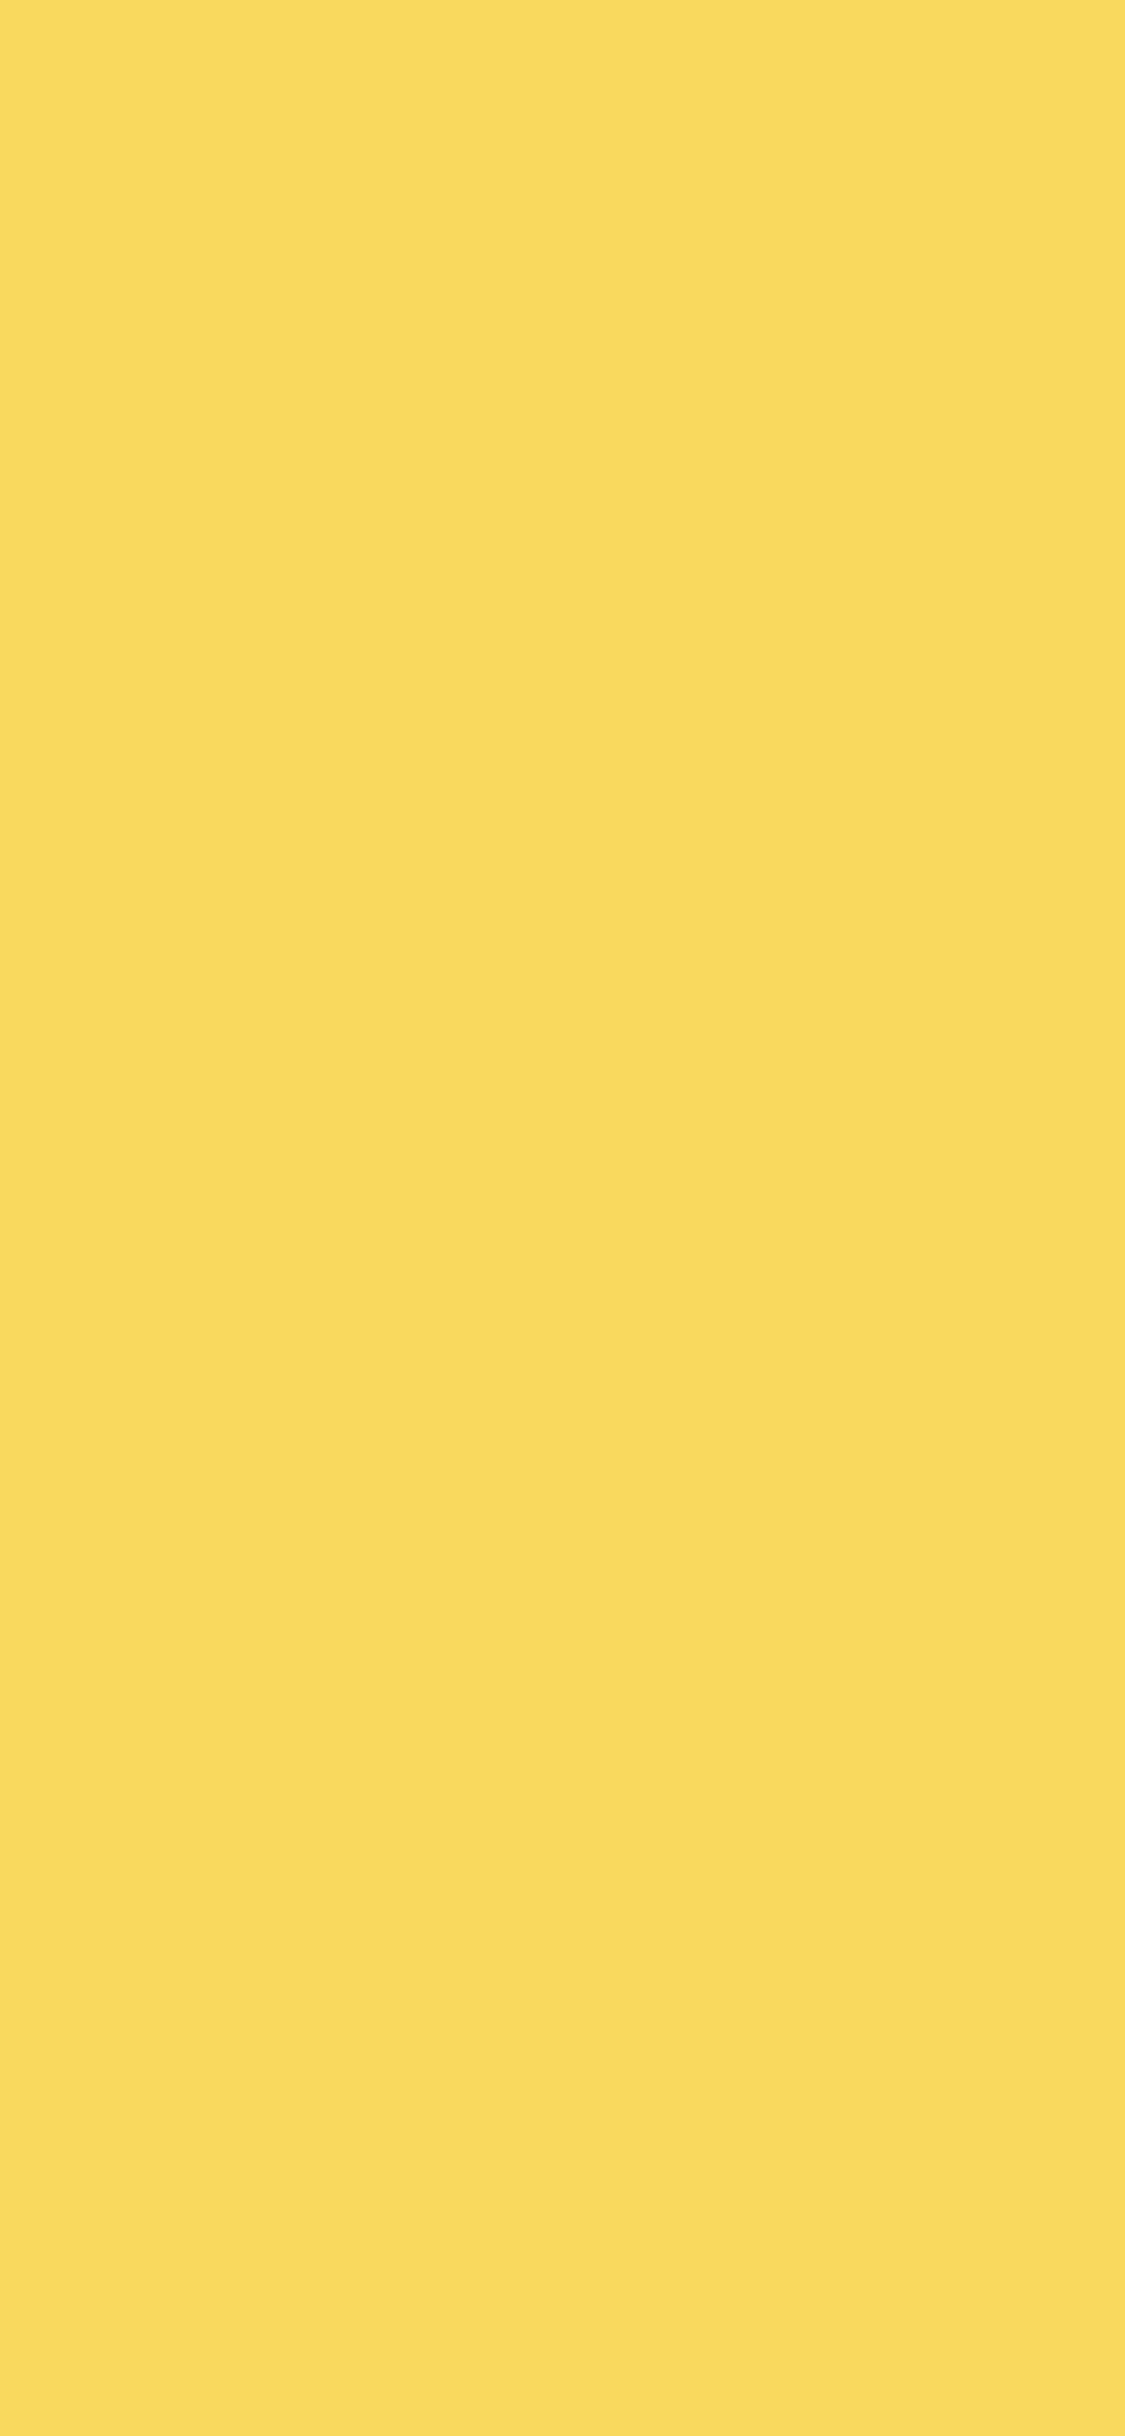 1125x2436 Naples Yellow Solid Color Background